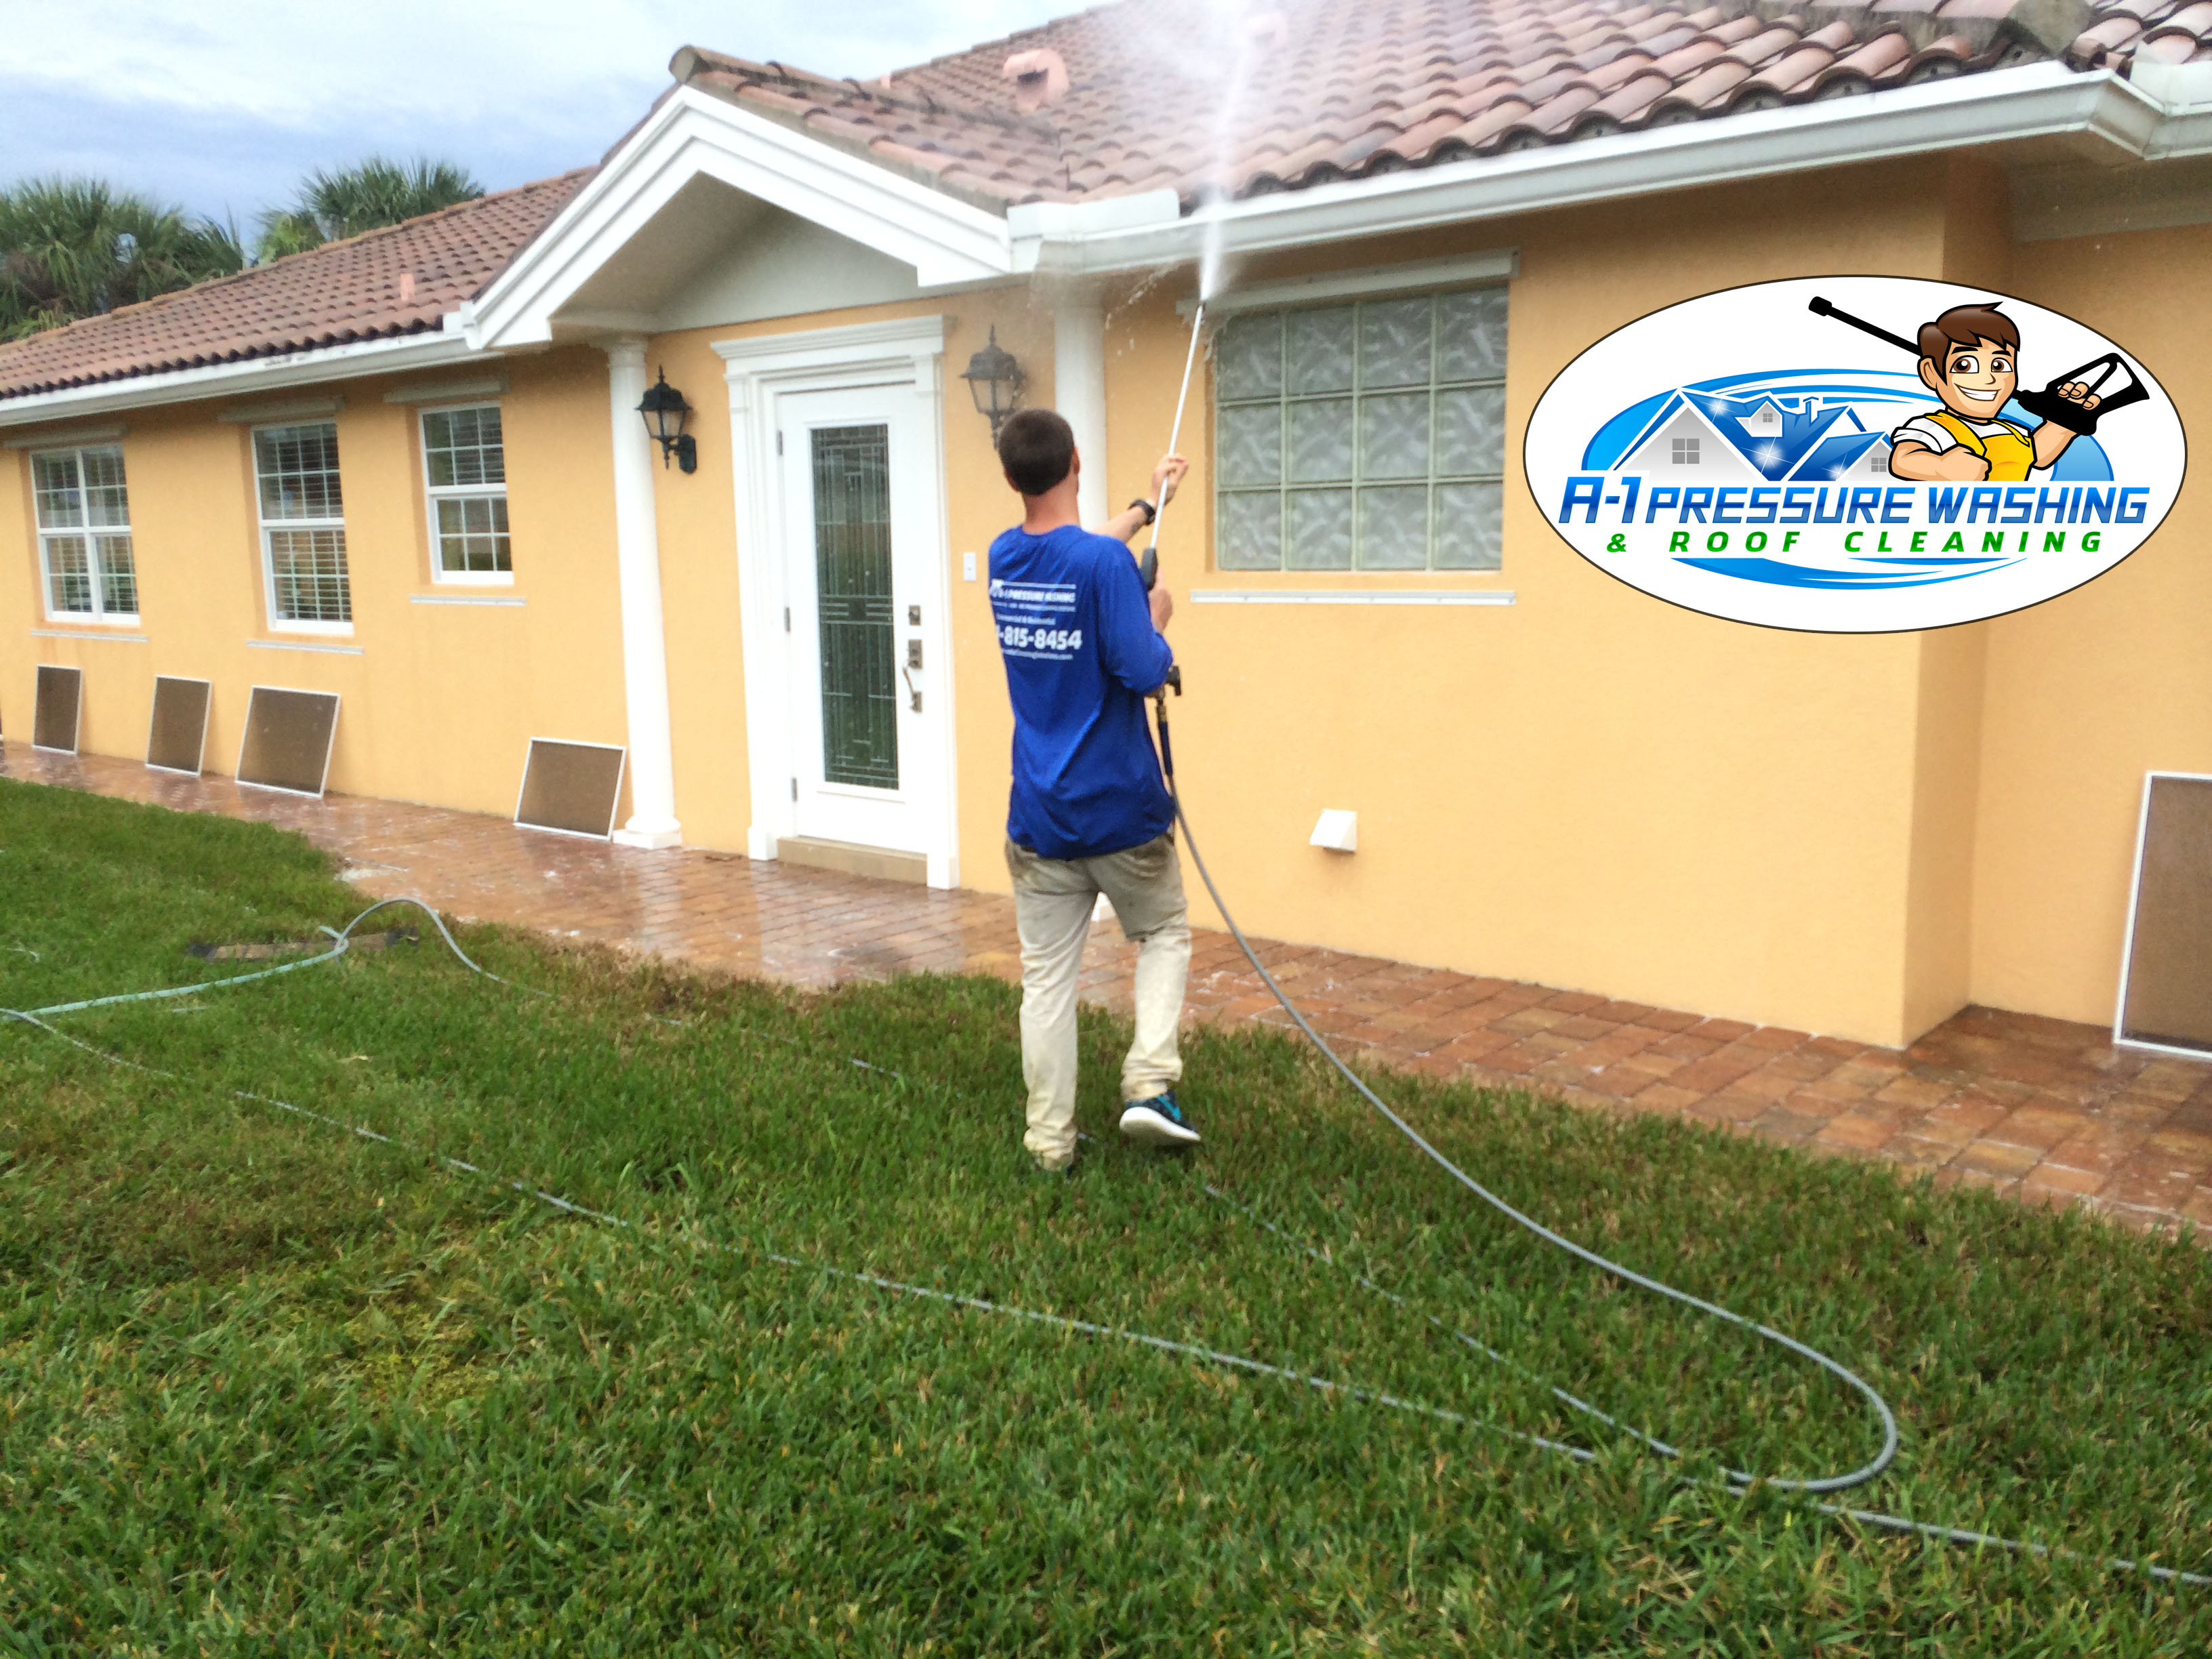 A-1 Pressure Washing & Roof Cleaning, Hi - Low - No Pressure Cleaning Systems, Serving Sarasota, Charlotte, Manatee, and Lee Counties since  1996 - FREE ESTIMATES 941-815-8454